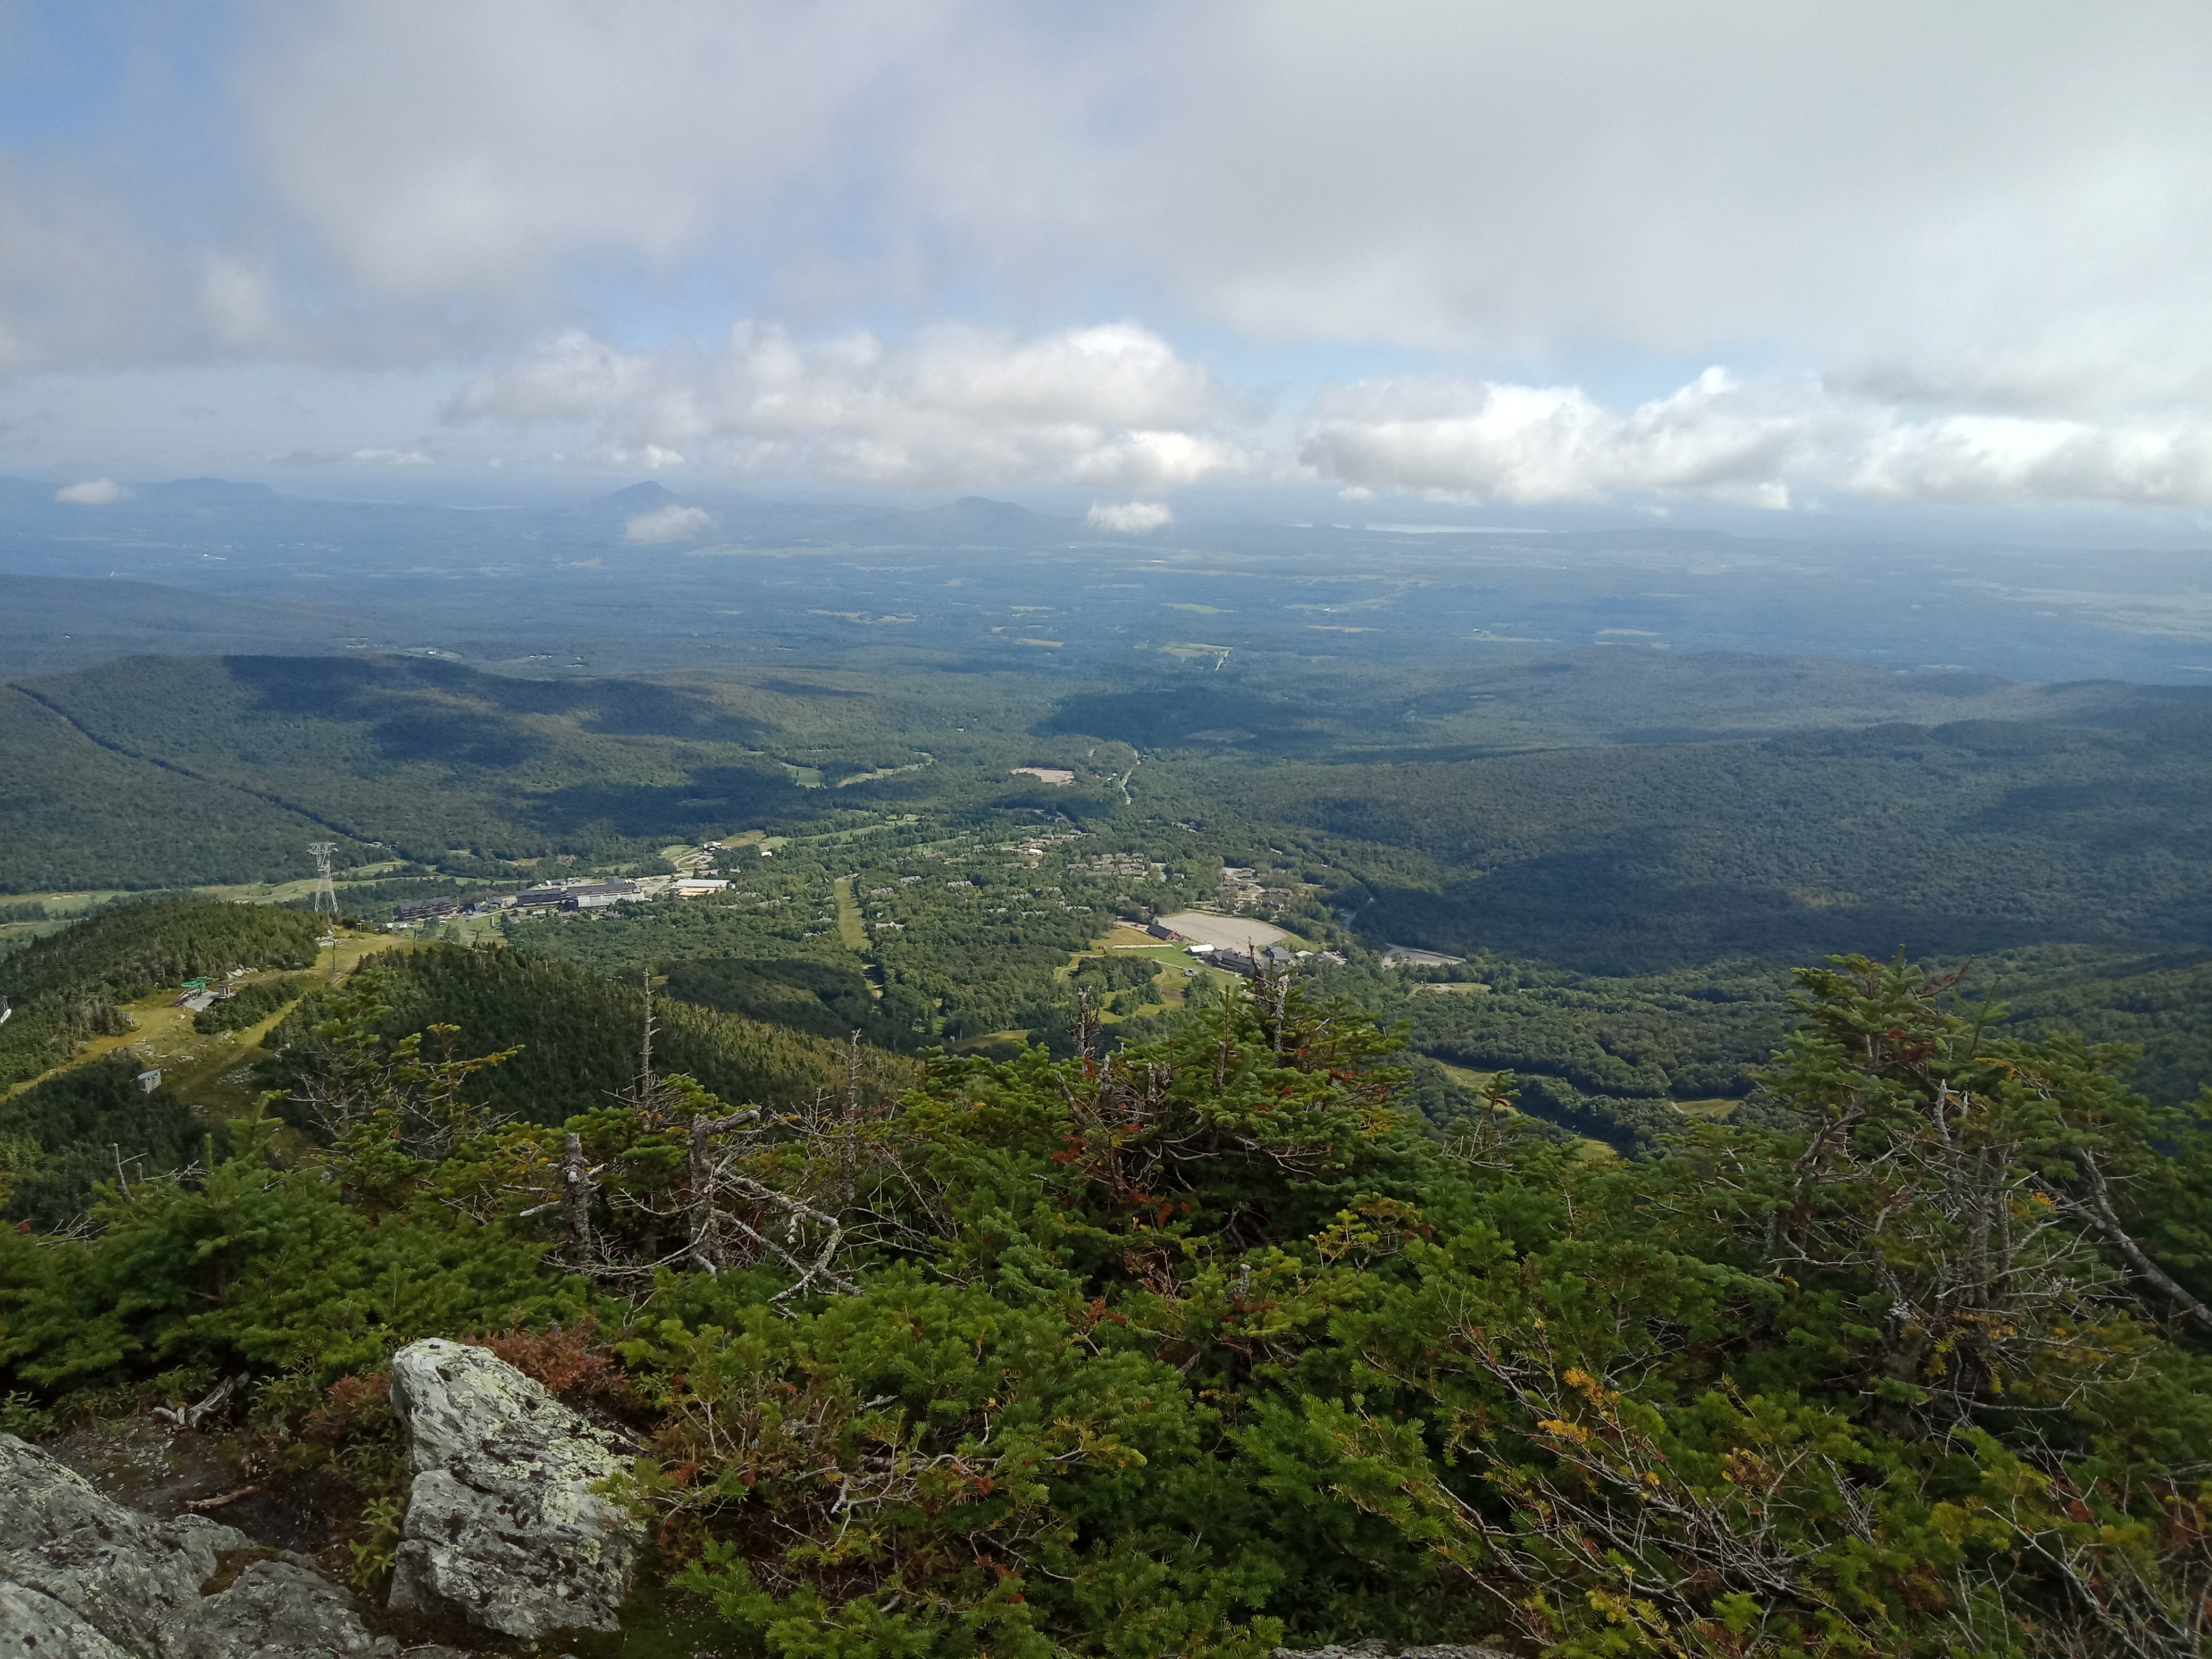 Summit view from the top of Jay Peak, the last big mountain on the Vermont Long Trail.